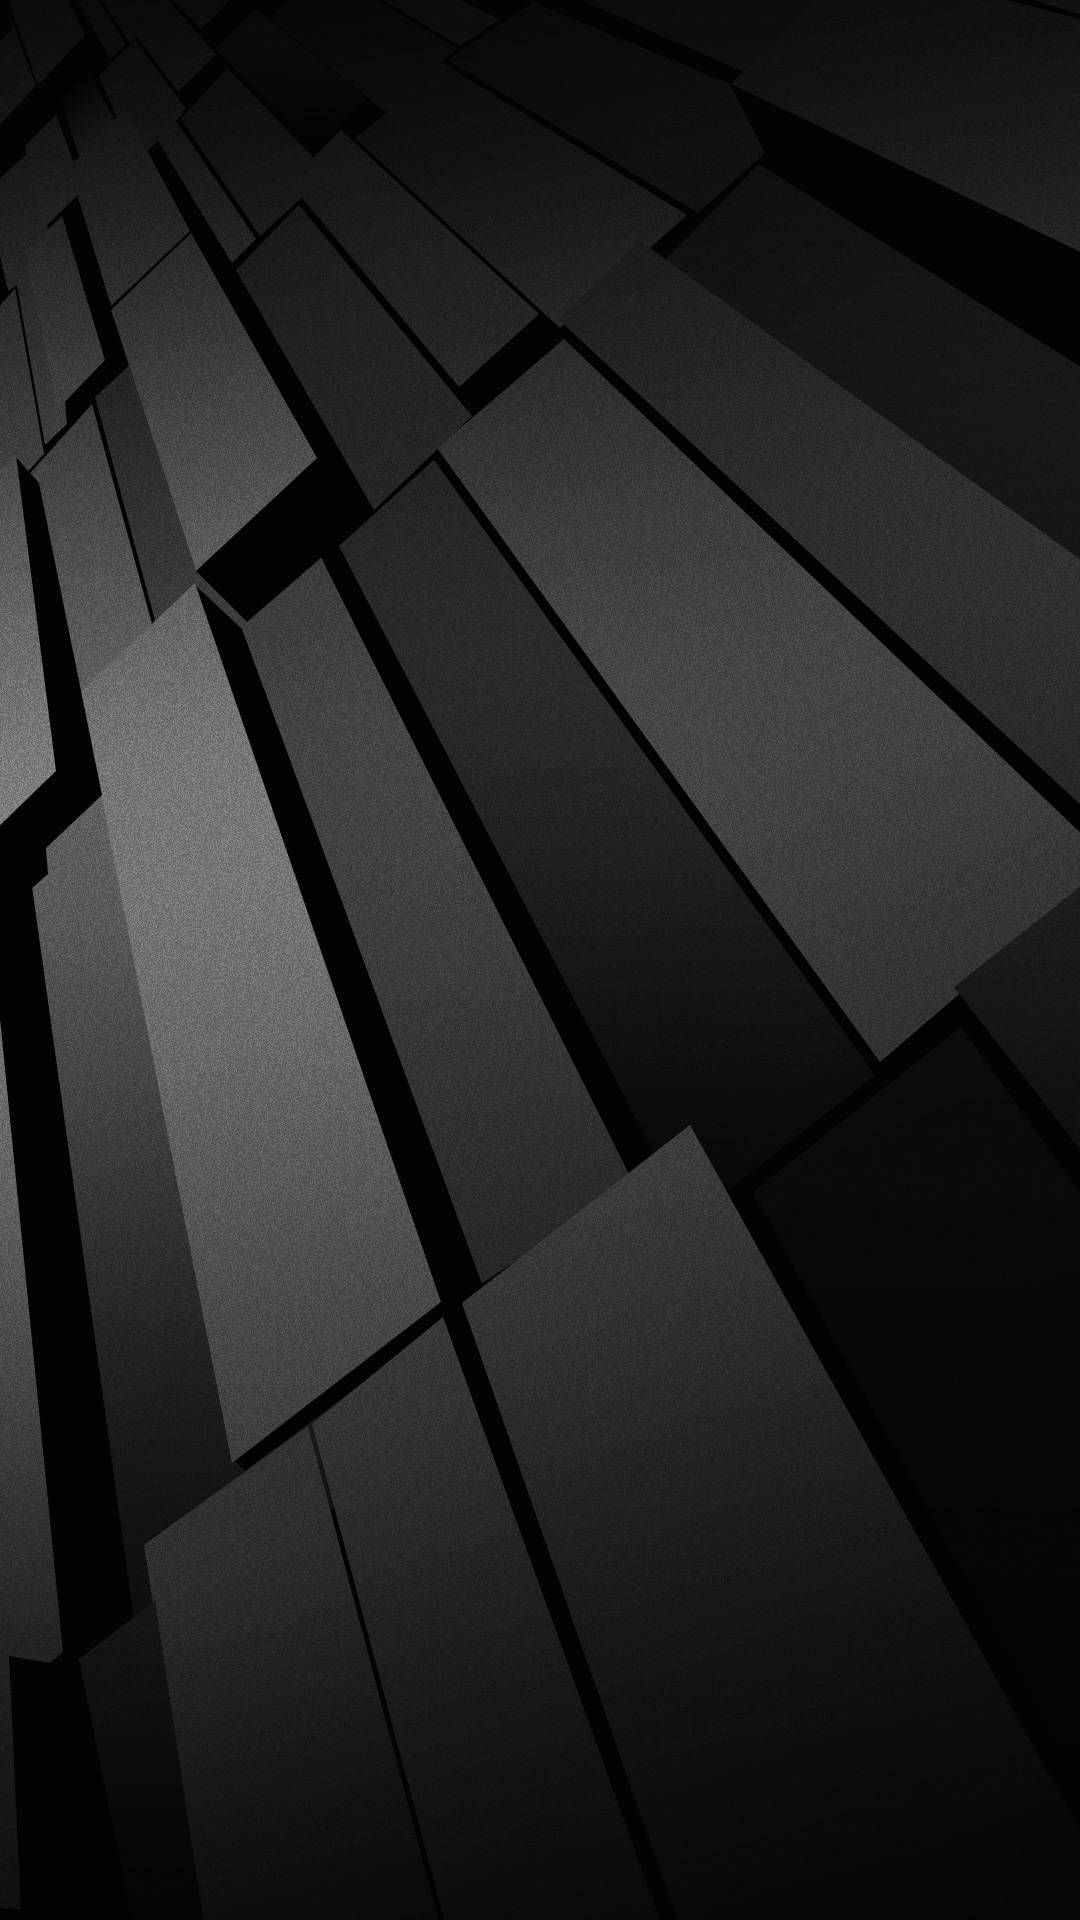 Black And White iPhone hd wallpaper